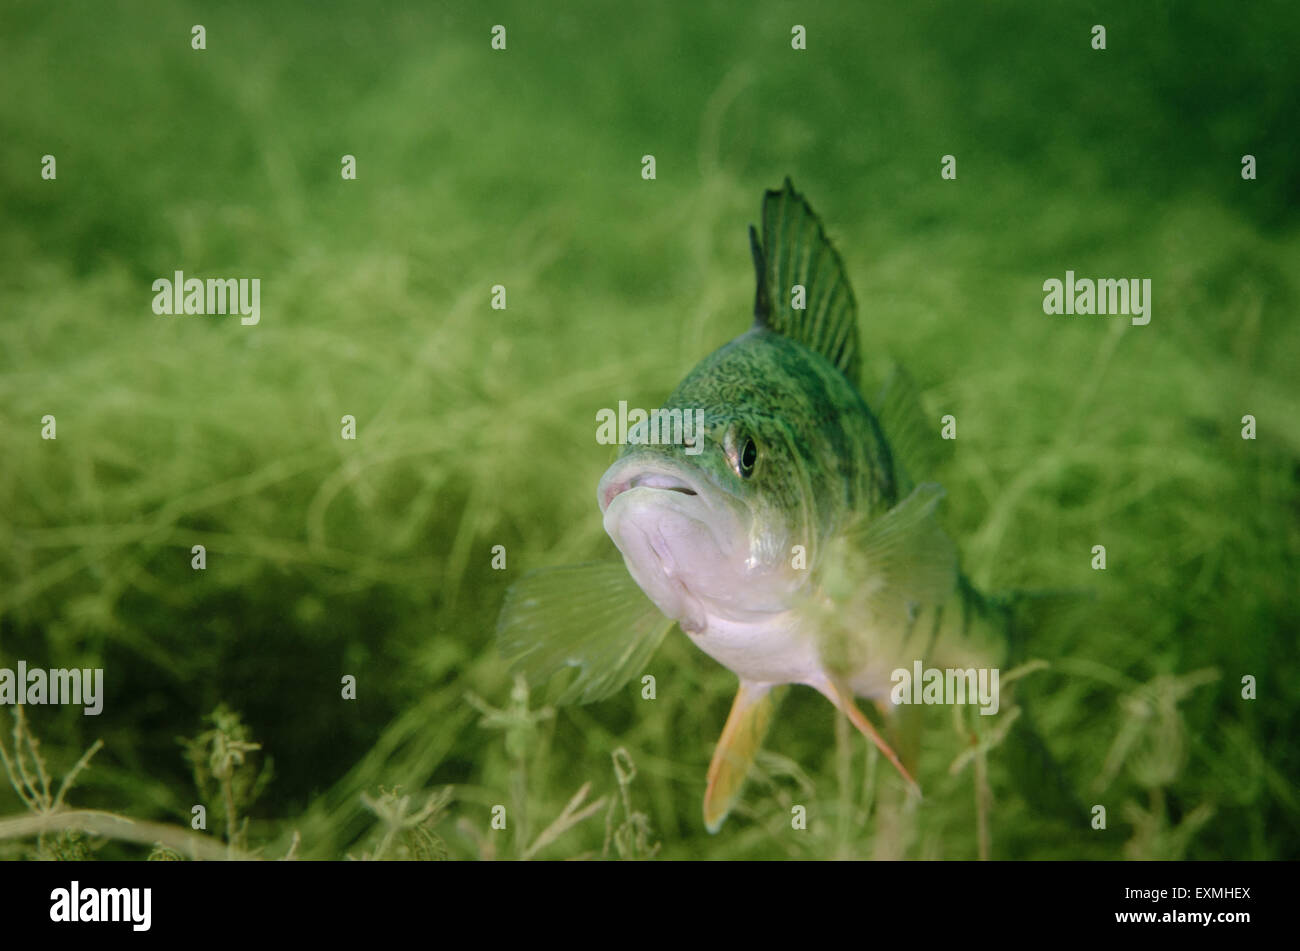 Yellow Perch fish (Perca flavescens) underwater. - Stock Image